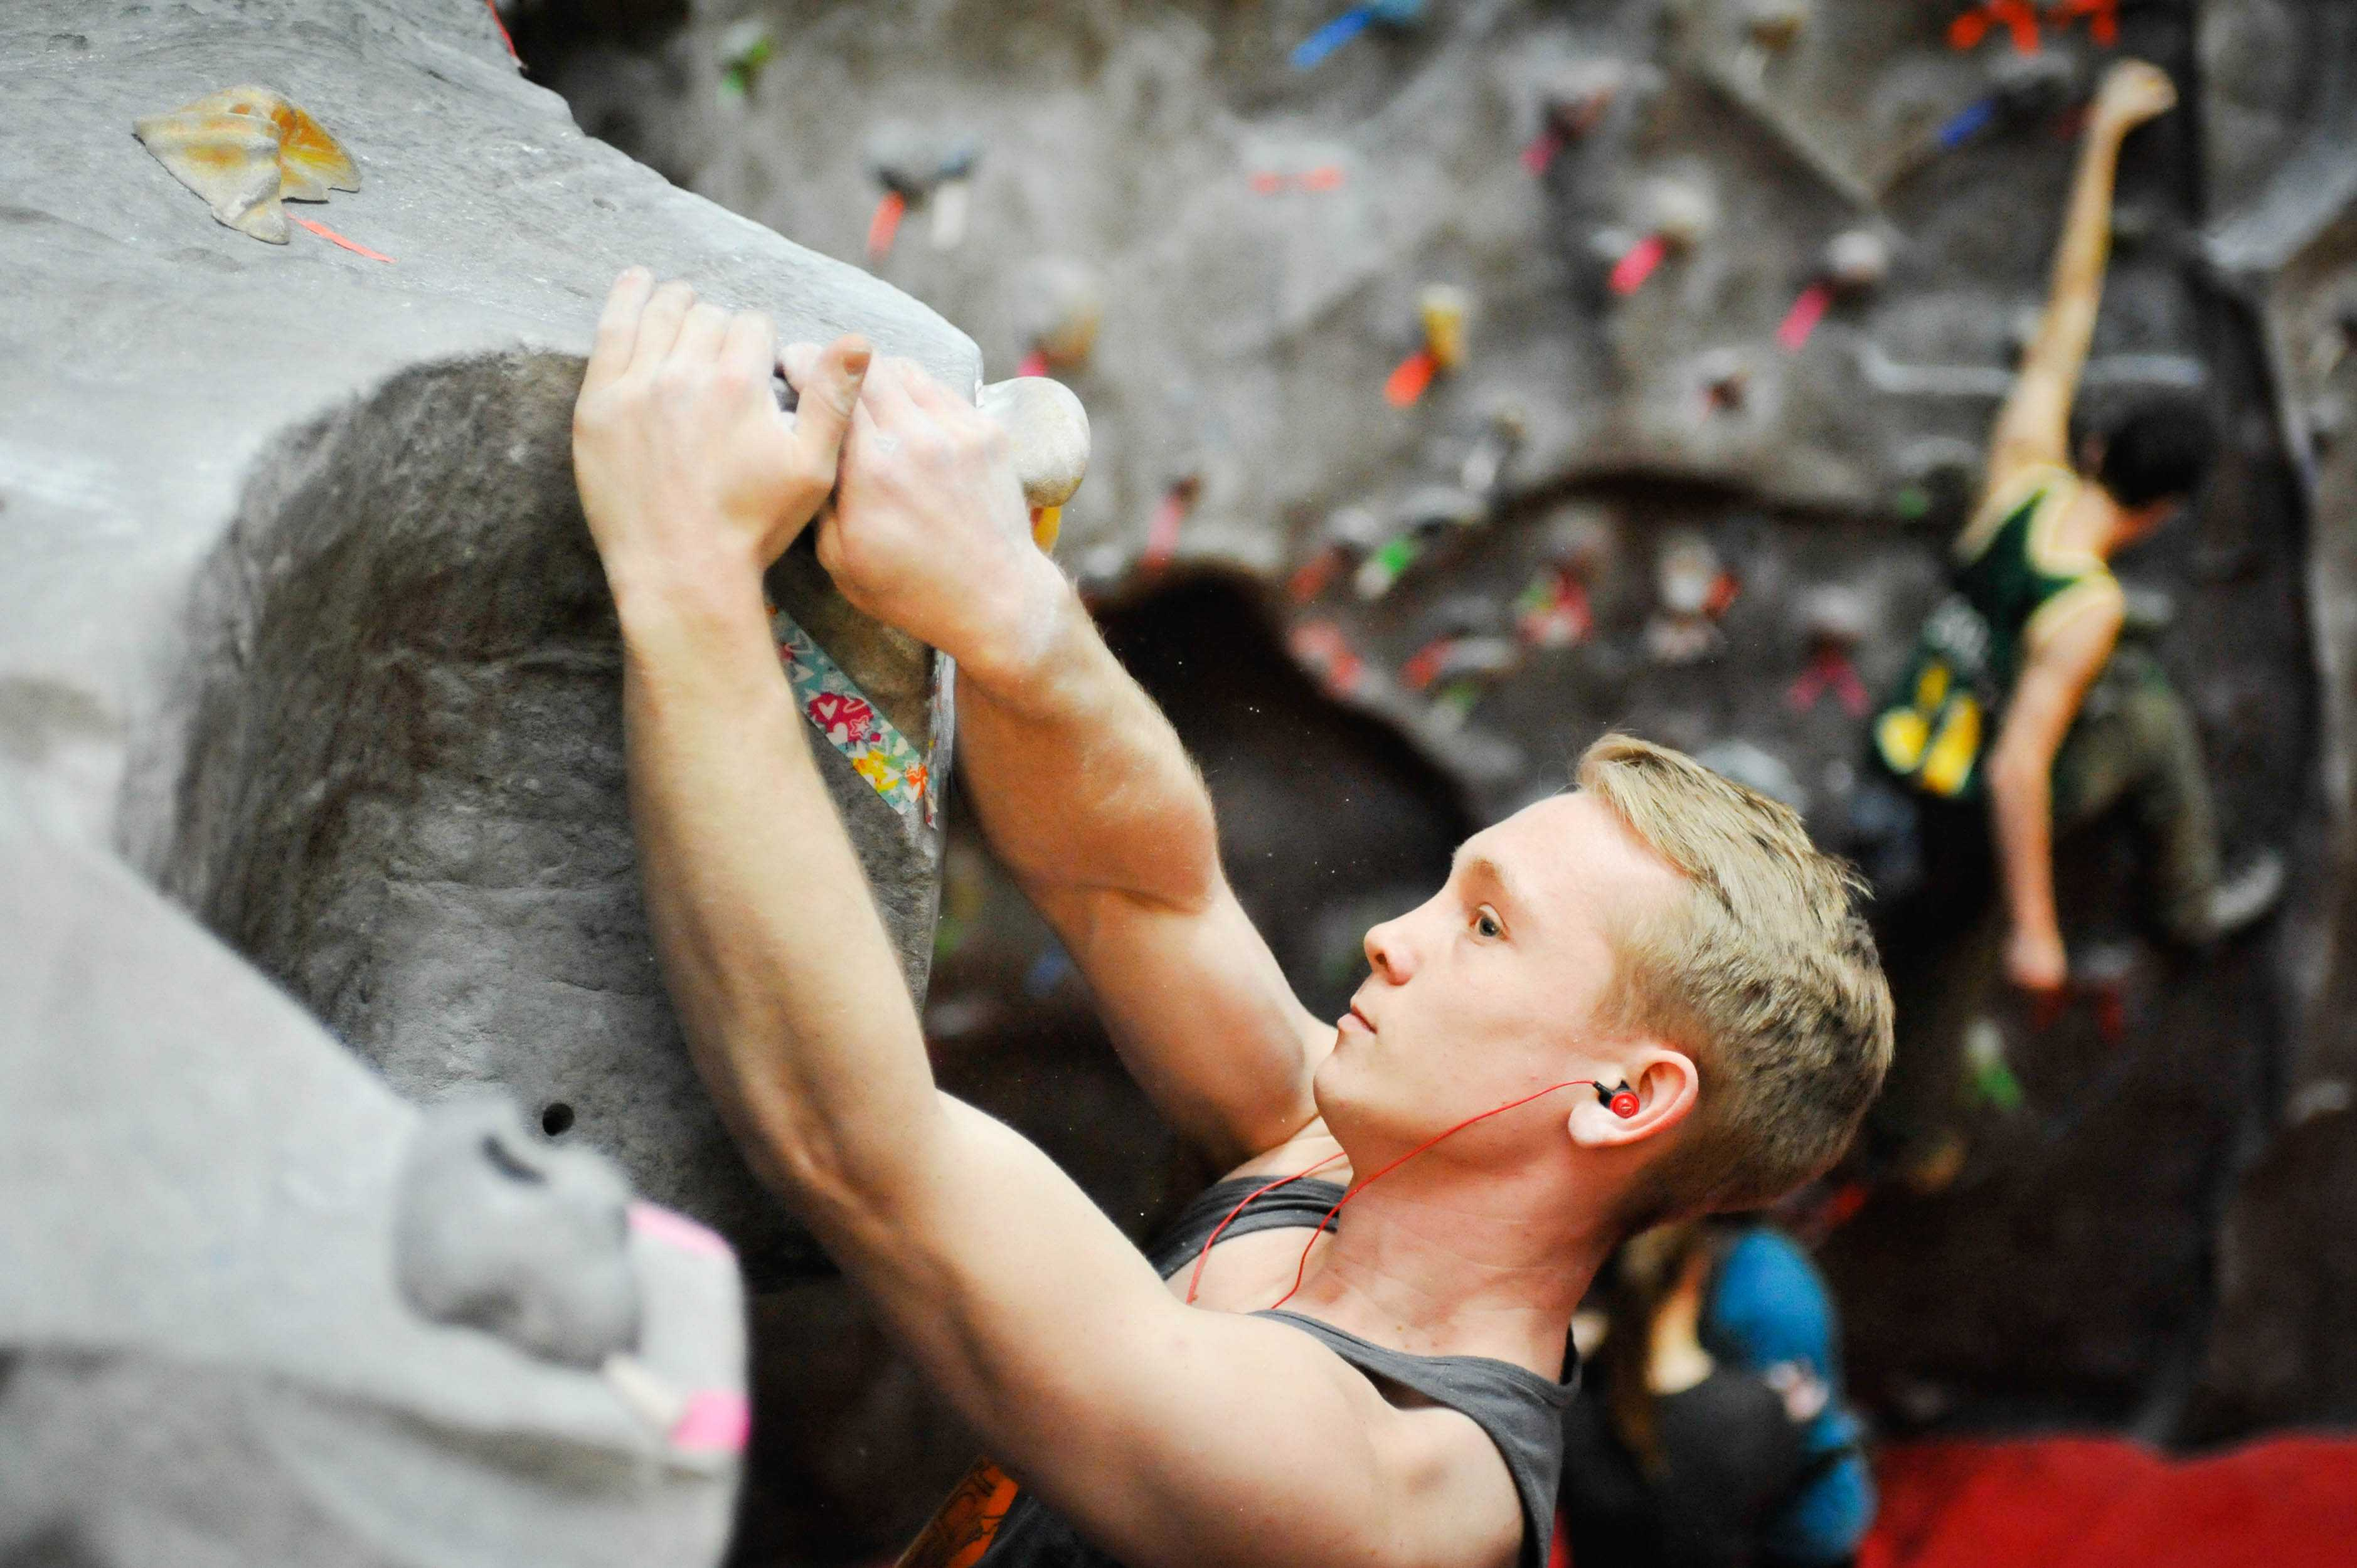 Dan Connelly (pictured) scales the wall during a practice. He is one of the top point placers on the CWU Climbing club roster. The team is currently ranked third in the standings.